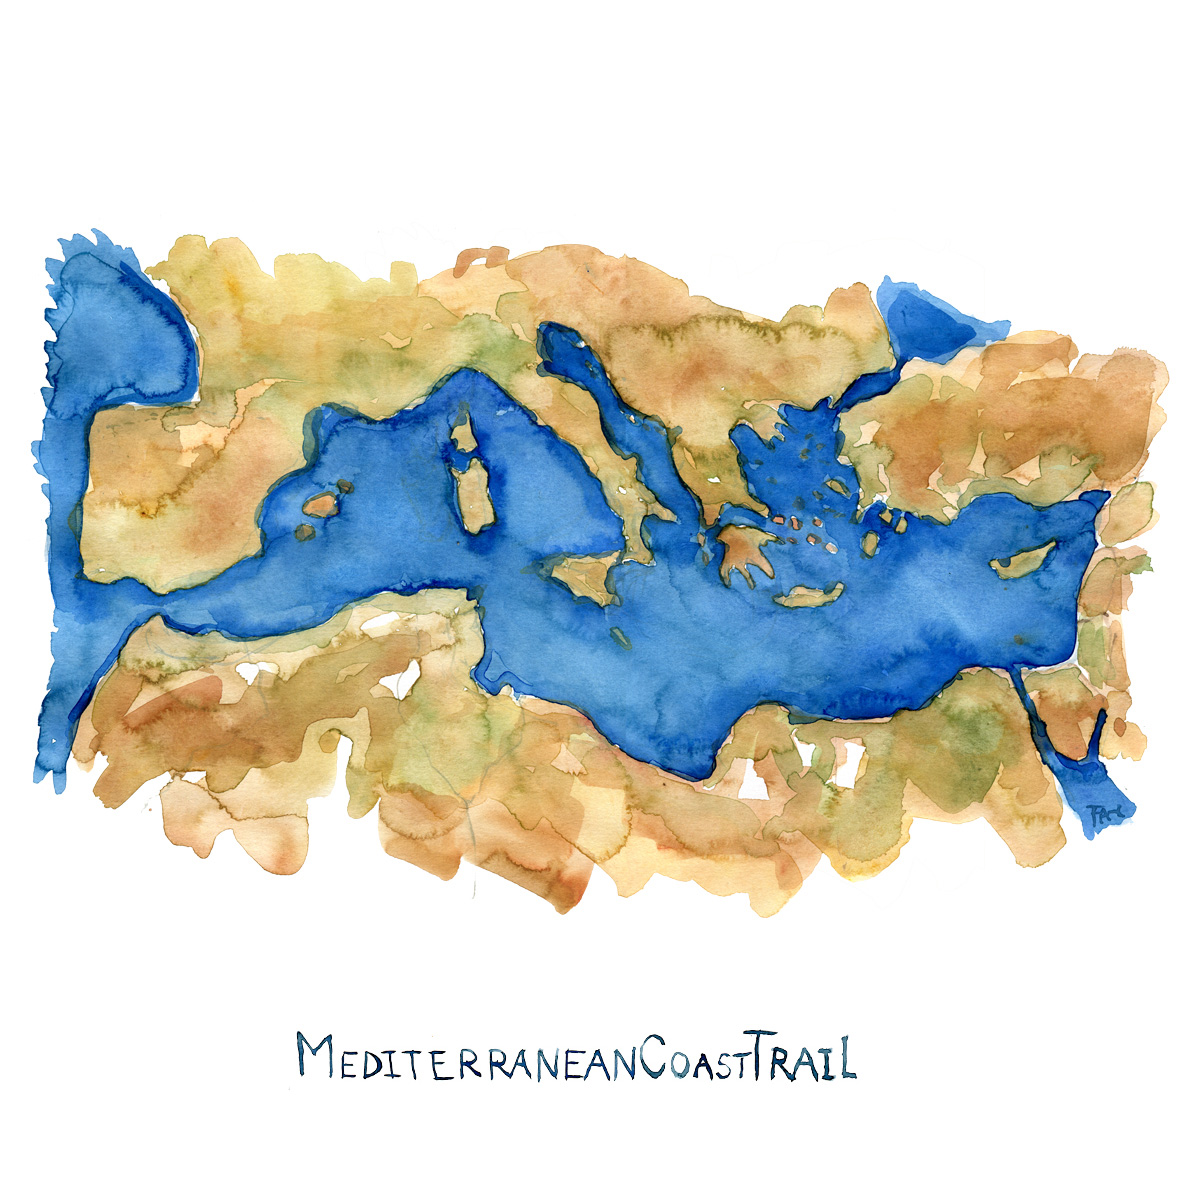 Watercolor map of Mediterranean Sea by Frits Ahlefeldt, with the text MediterraneanCoastTrail on it